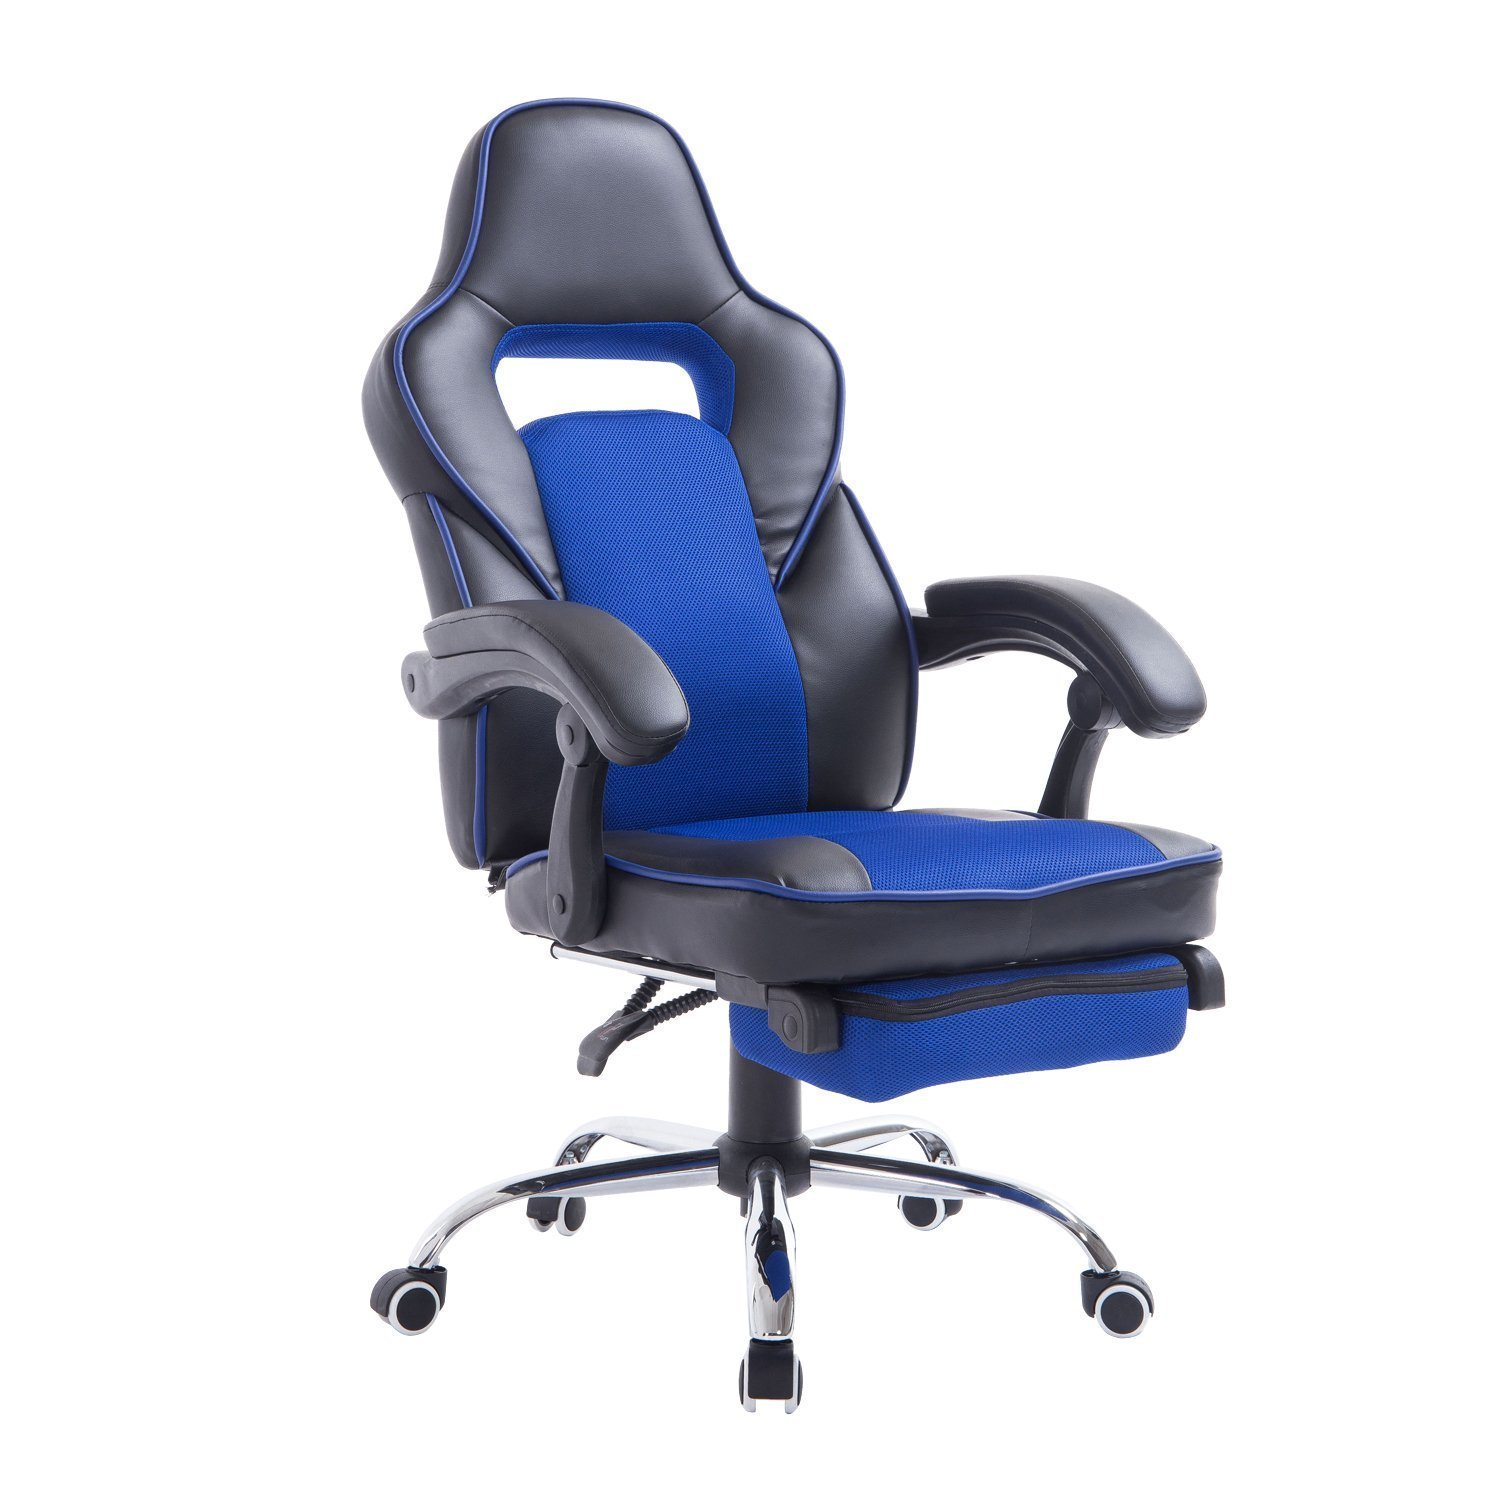 office recliner chairs. HomCom Race Car Style High Back PU Leather Reclining Office Chair With Footrest - Blue And Recliner Chairs S